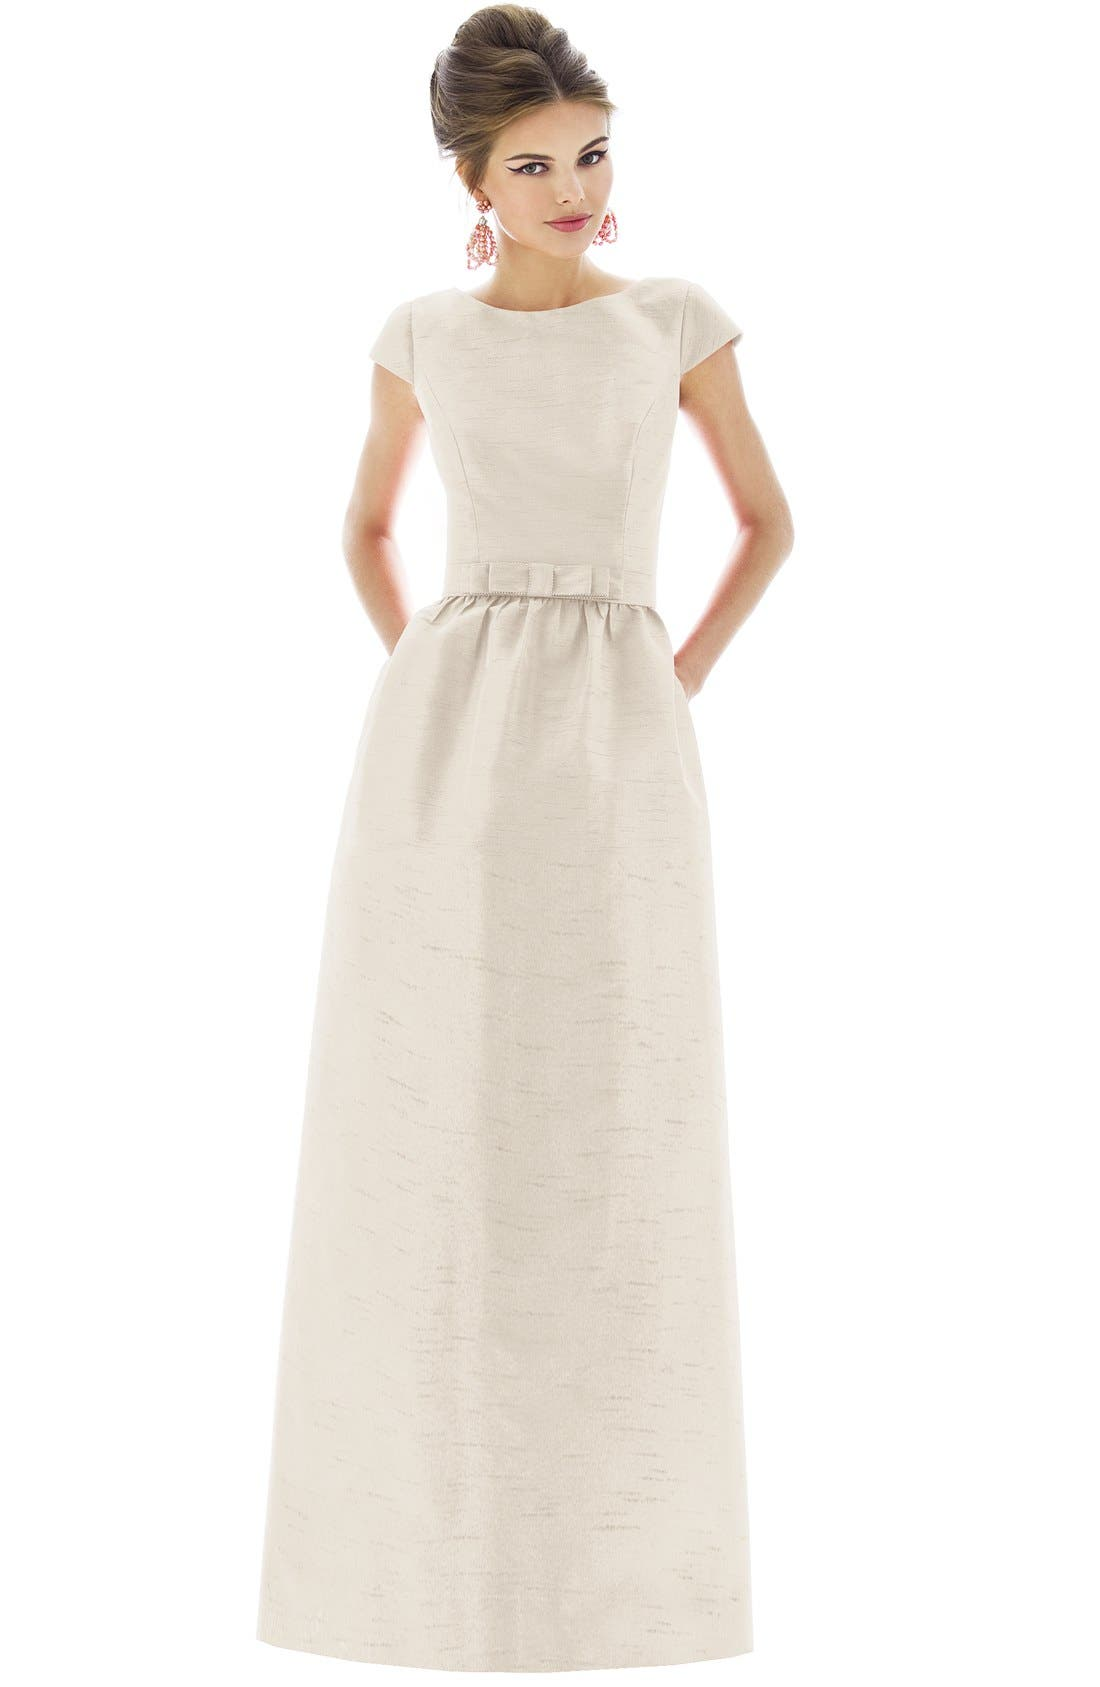 Grecian style dress white and black.